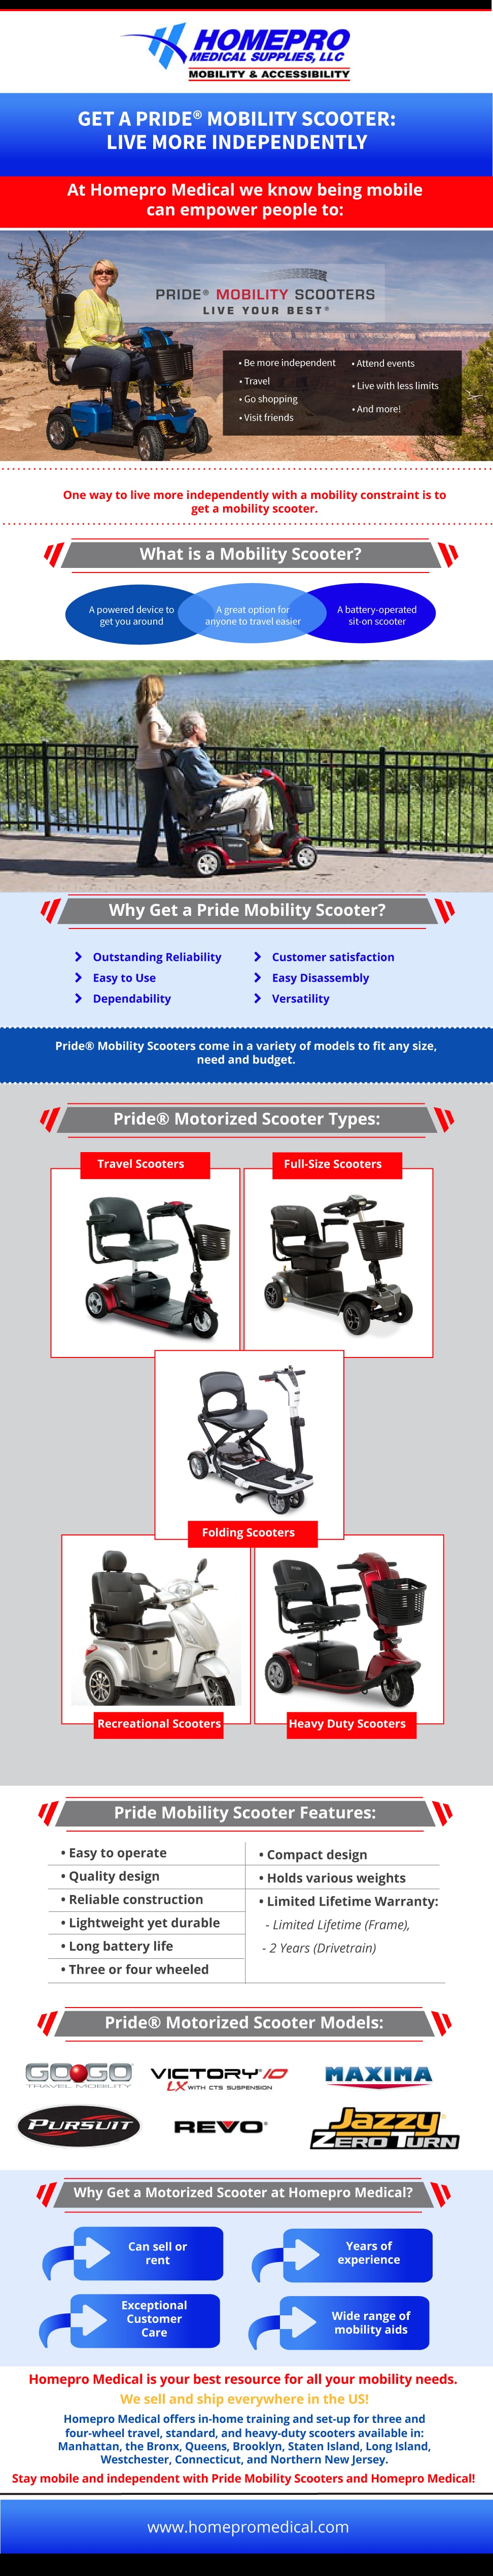 HomeProMedical_Infographic4_V7_Pride_Mobility_Scooters_rand_hbcyRTLvlP-min